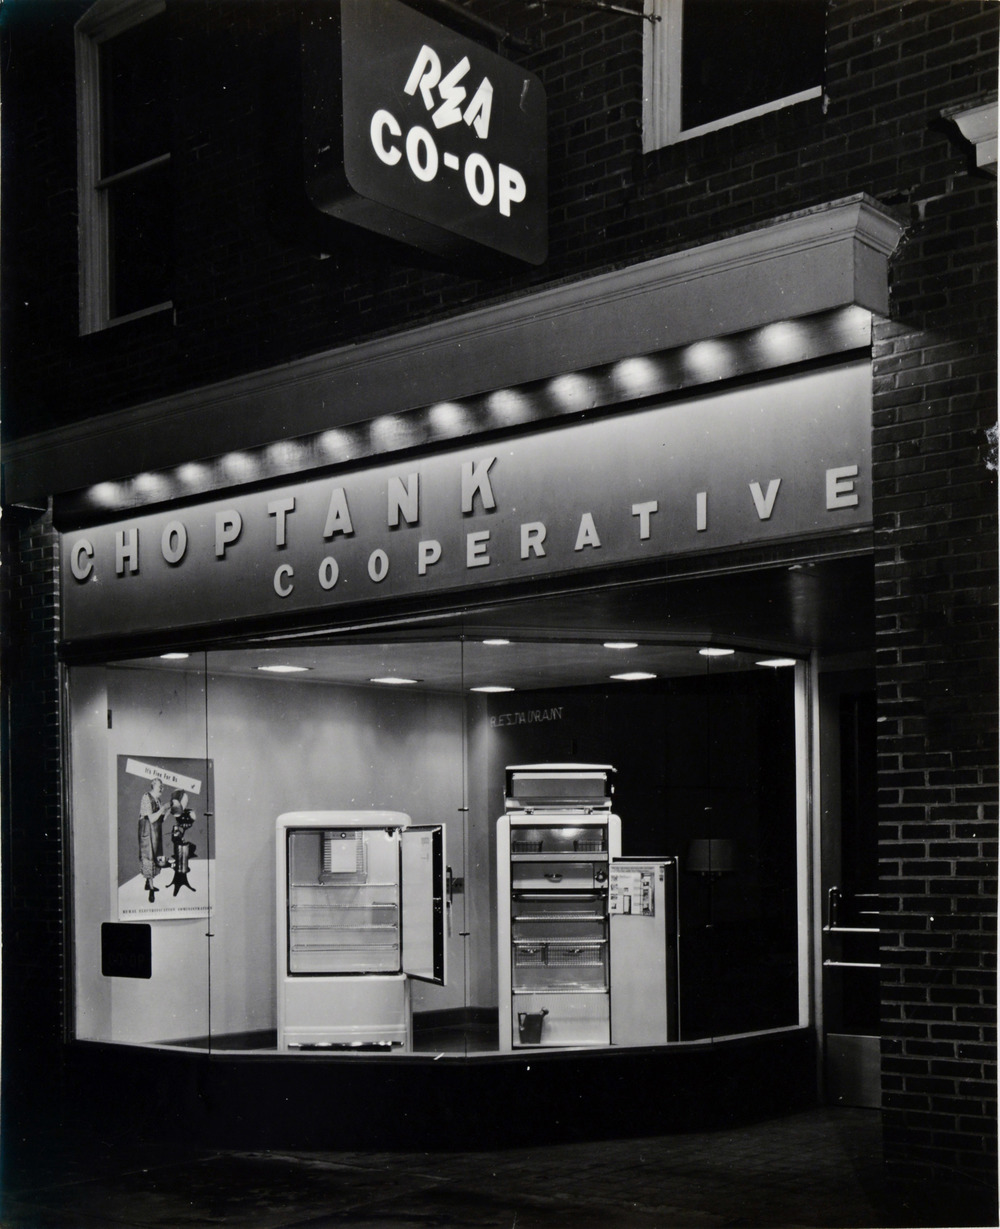 Choptank Cooperative, c. 1940.  Designers Roland Wank and Mario Bianculli, Denton, Maryland, 1939. Source: National Archives, College Park, Photographs of USDA, Record Group 16-G.